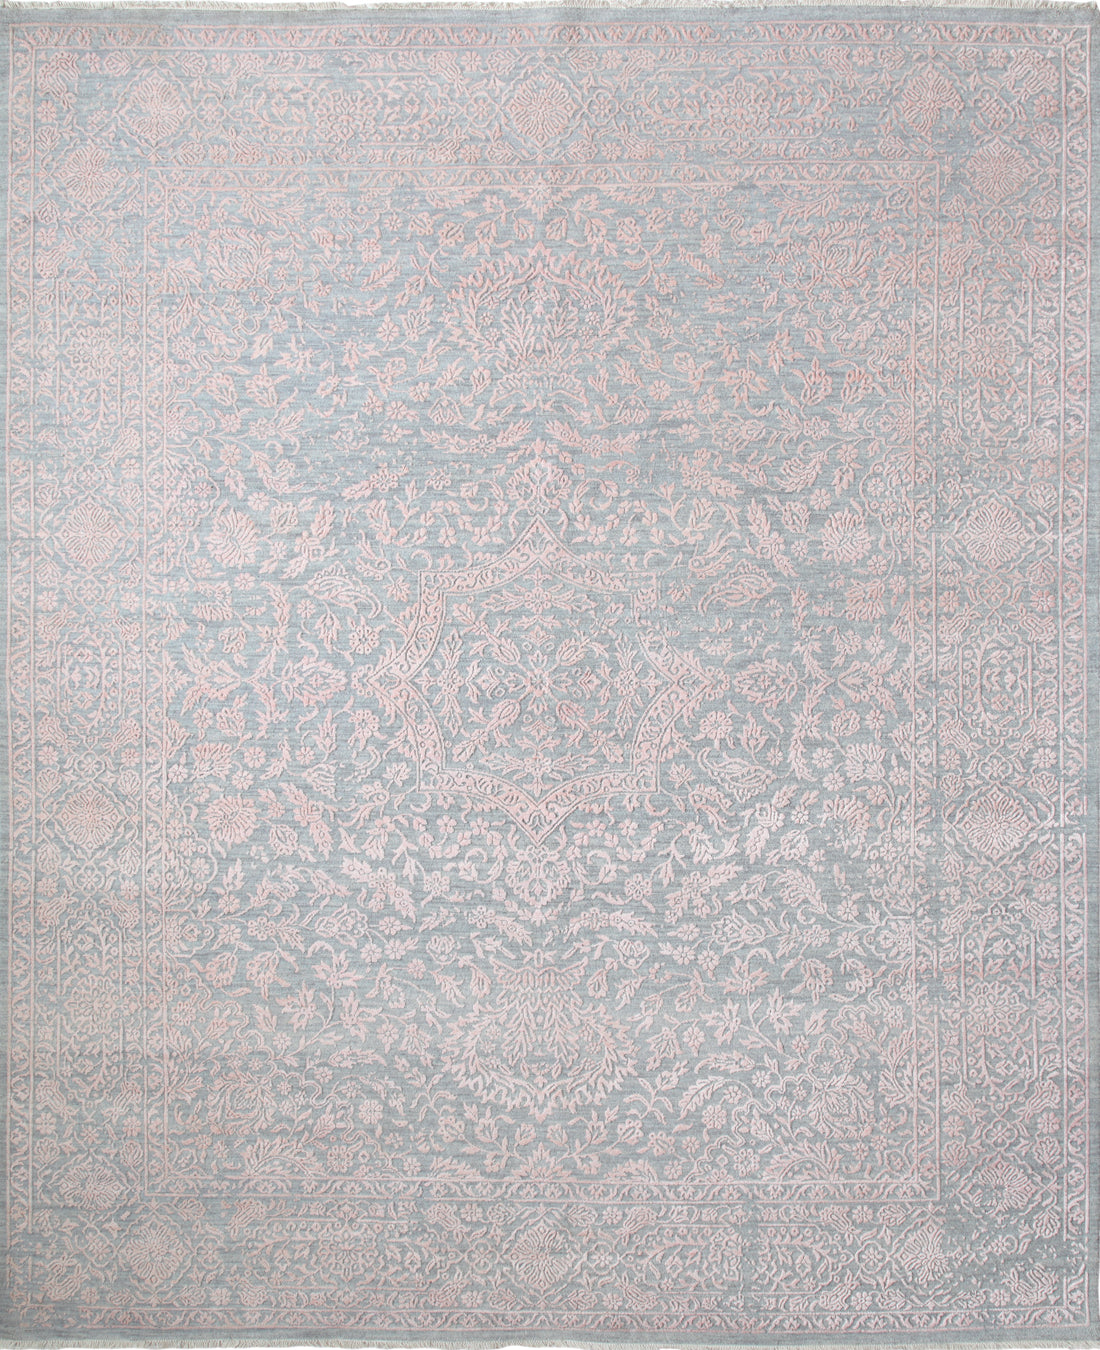 Solo Rugs Erase M8062-79 Gray Area Rug main image